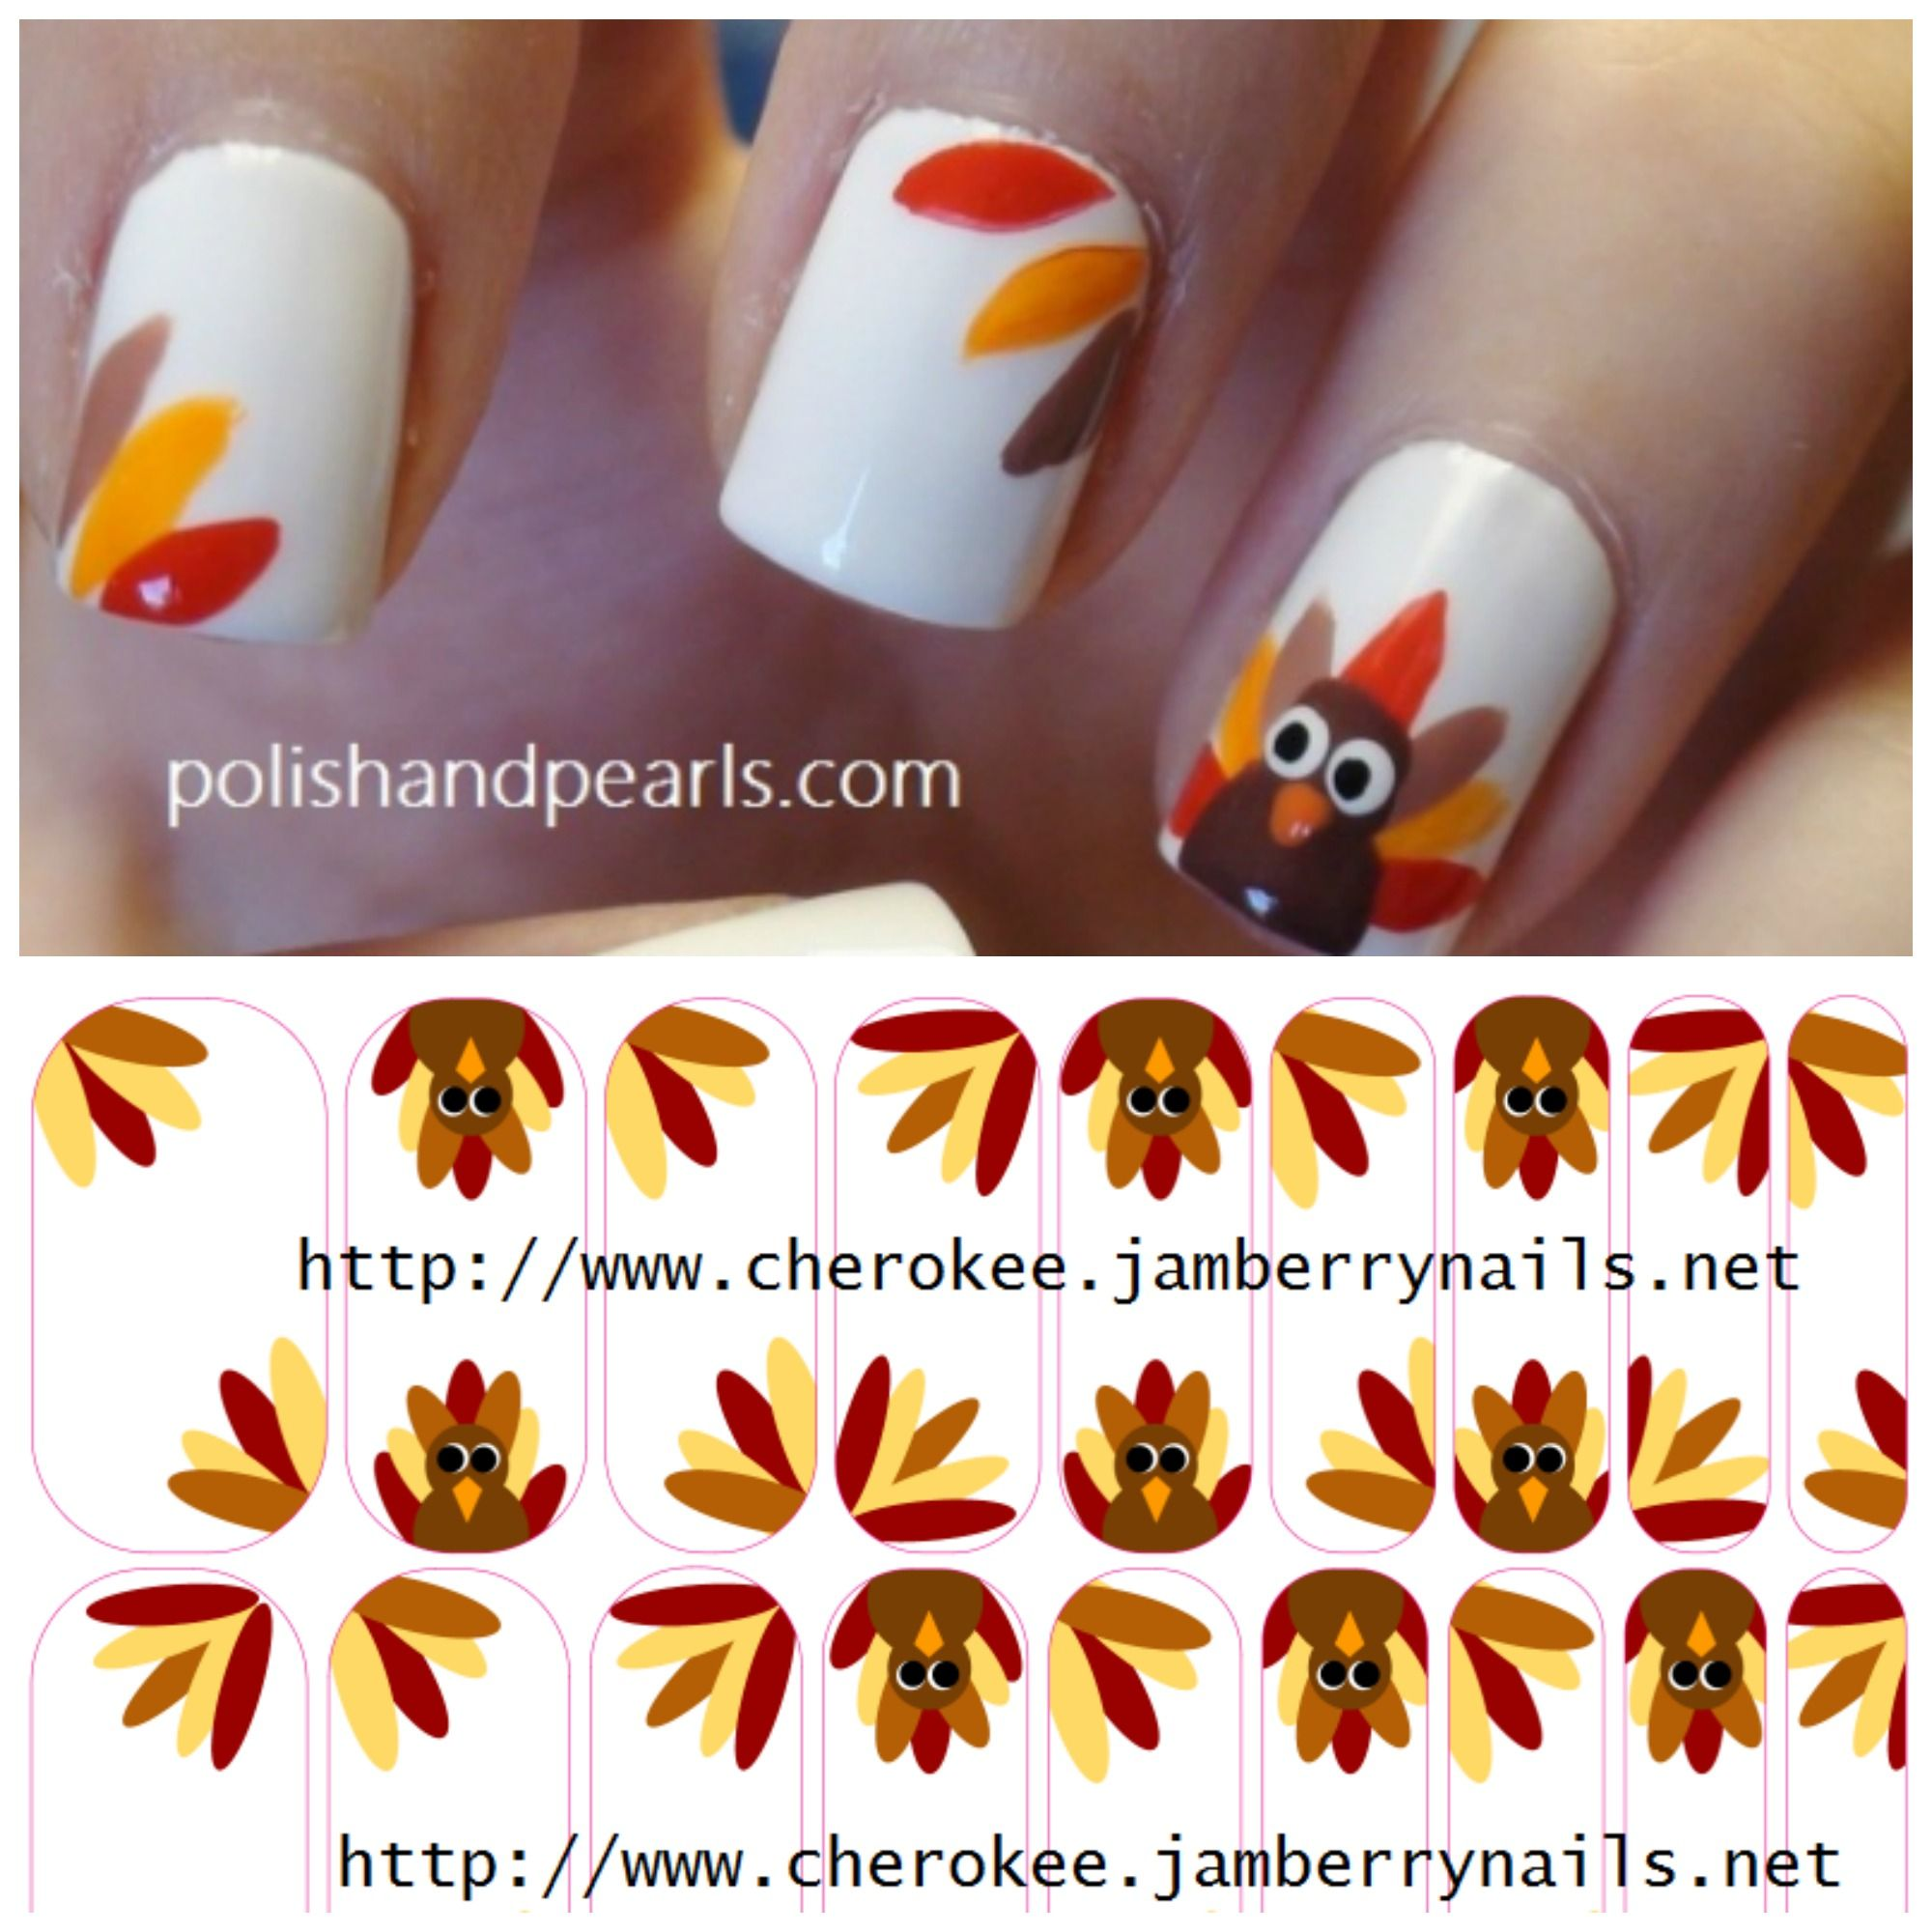 Design your own nail art in our nail art studio even recreate design your own nail art in our nail art studio even recreate looks you find prinsesfo Choice Image